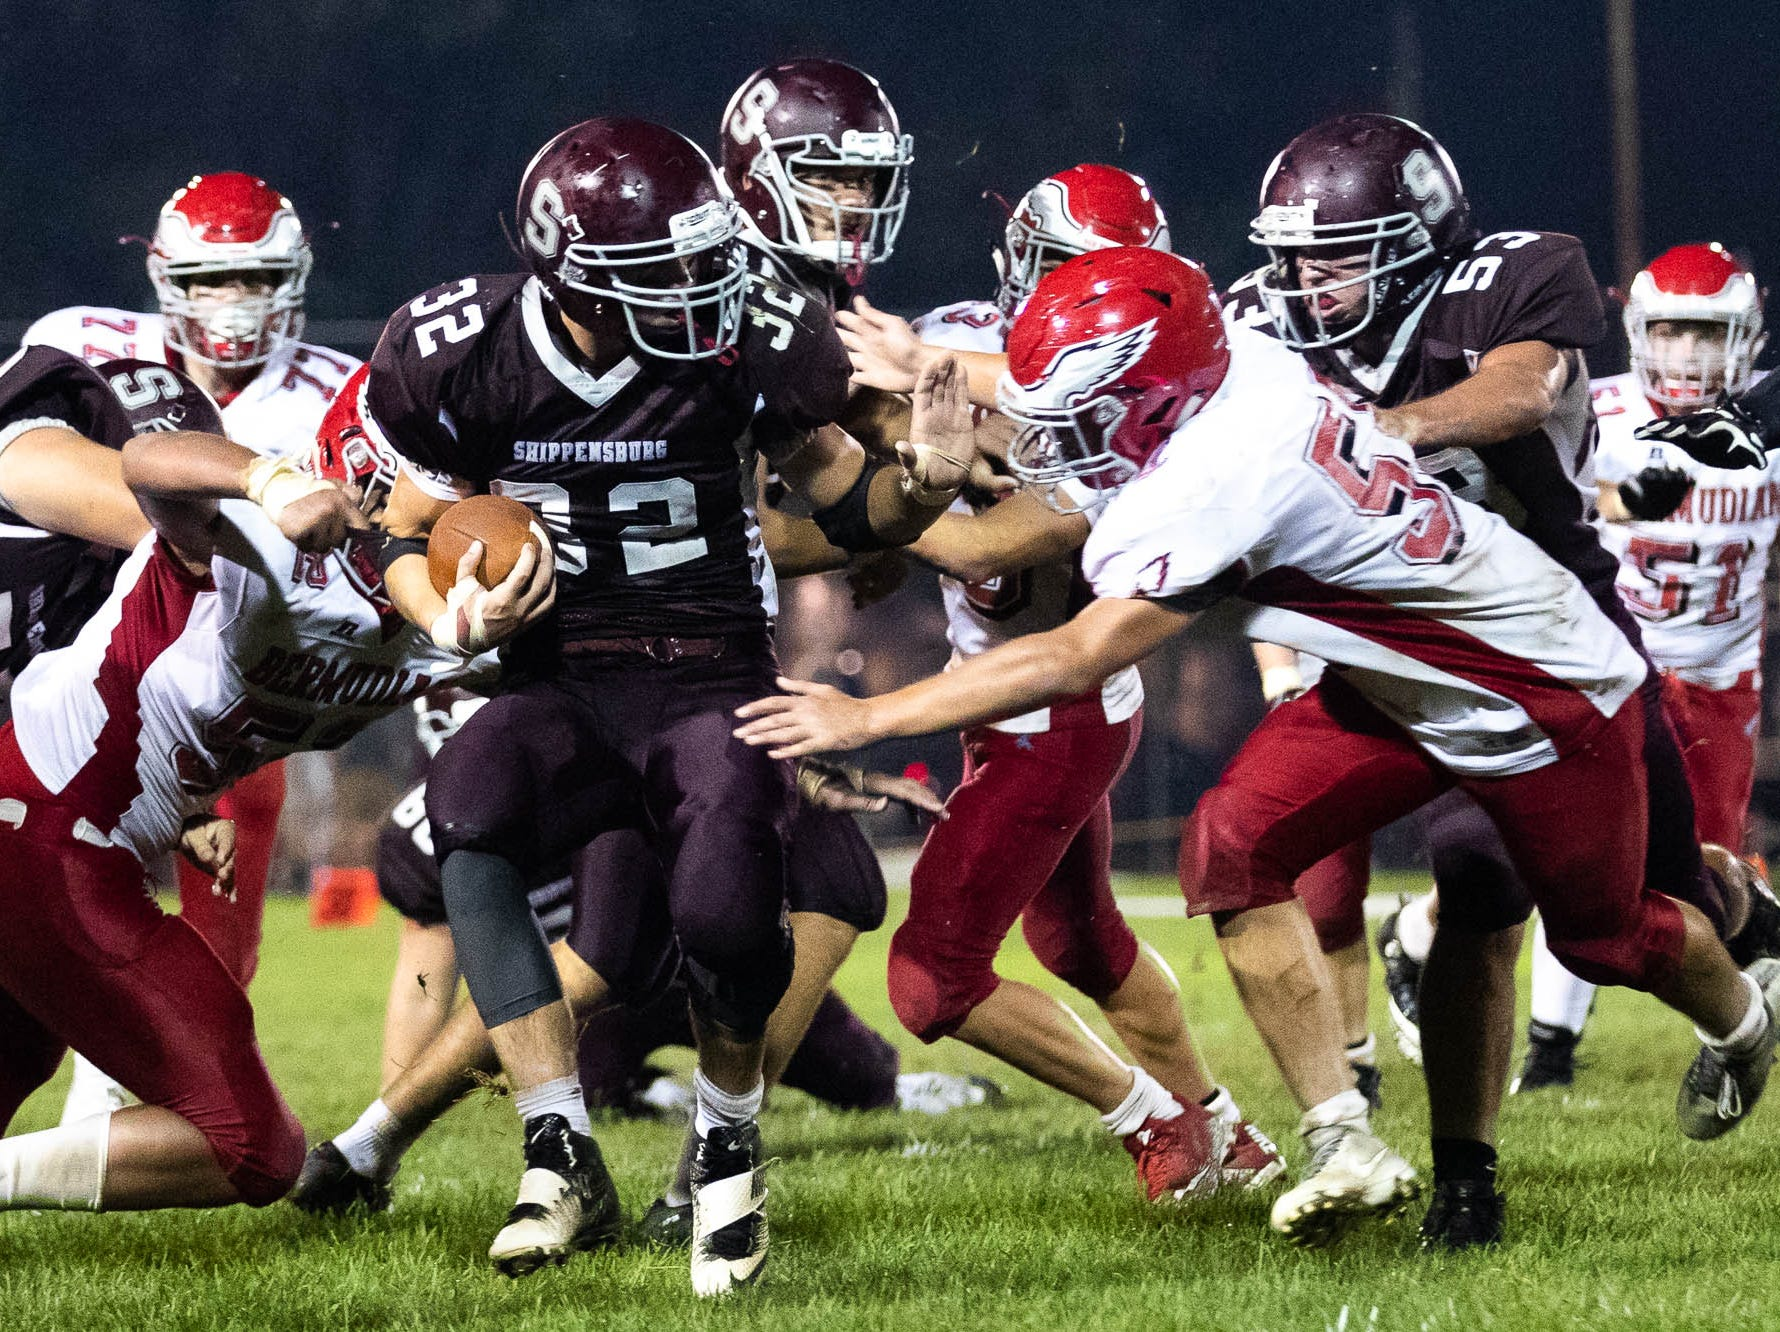 Shippensburg's Nick Weltz (32) attempts to get past the Bermudian Springs defense during a football game between Shippensburg and Bermudian Springs, Friday, Sept. 7, 2018, at Shippensburg High School. The Shippensburg Greyhounds defeated the Bermudian Springs Eagles 31-17.